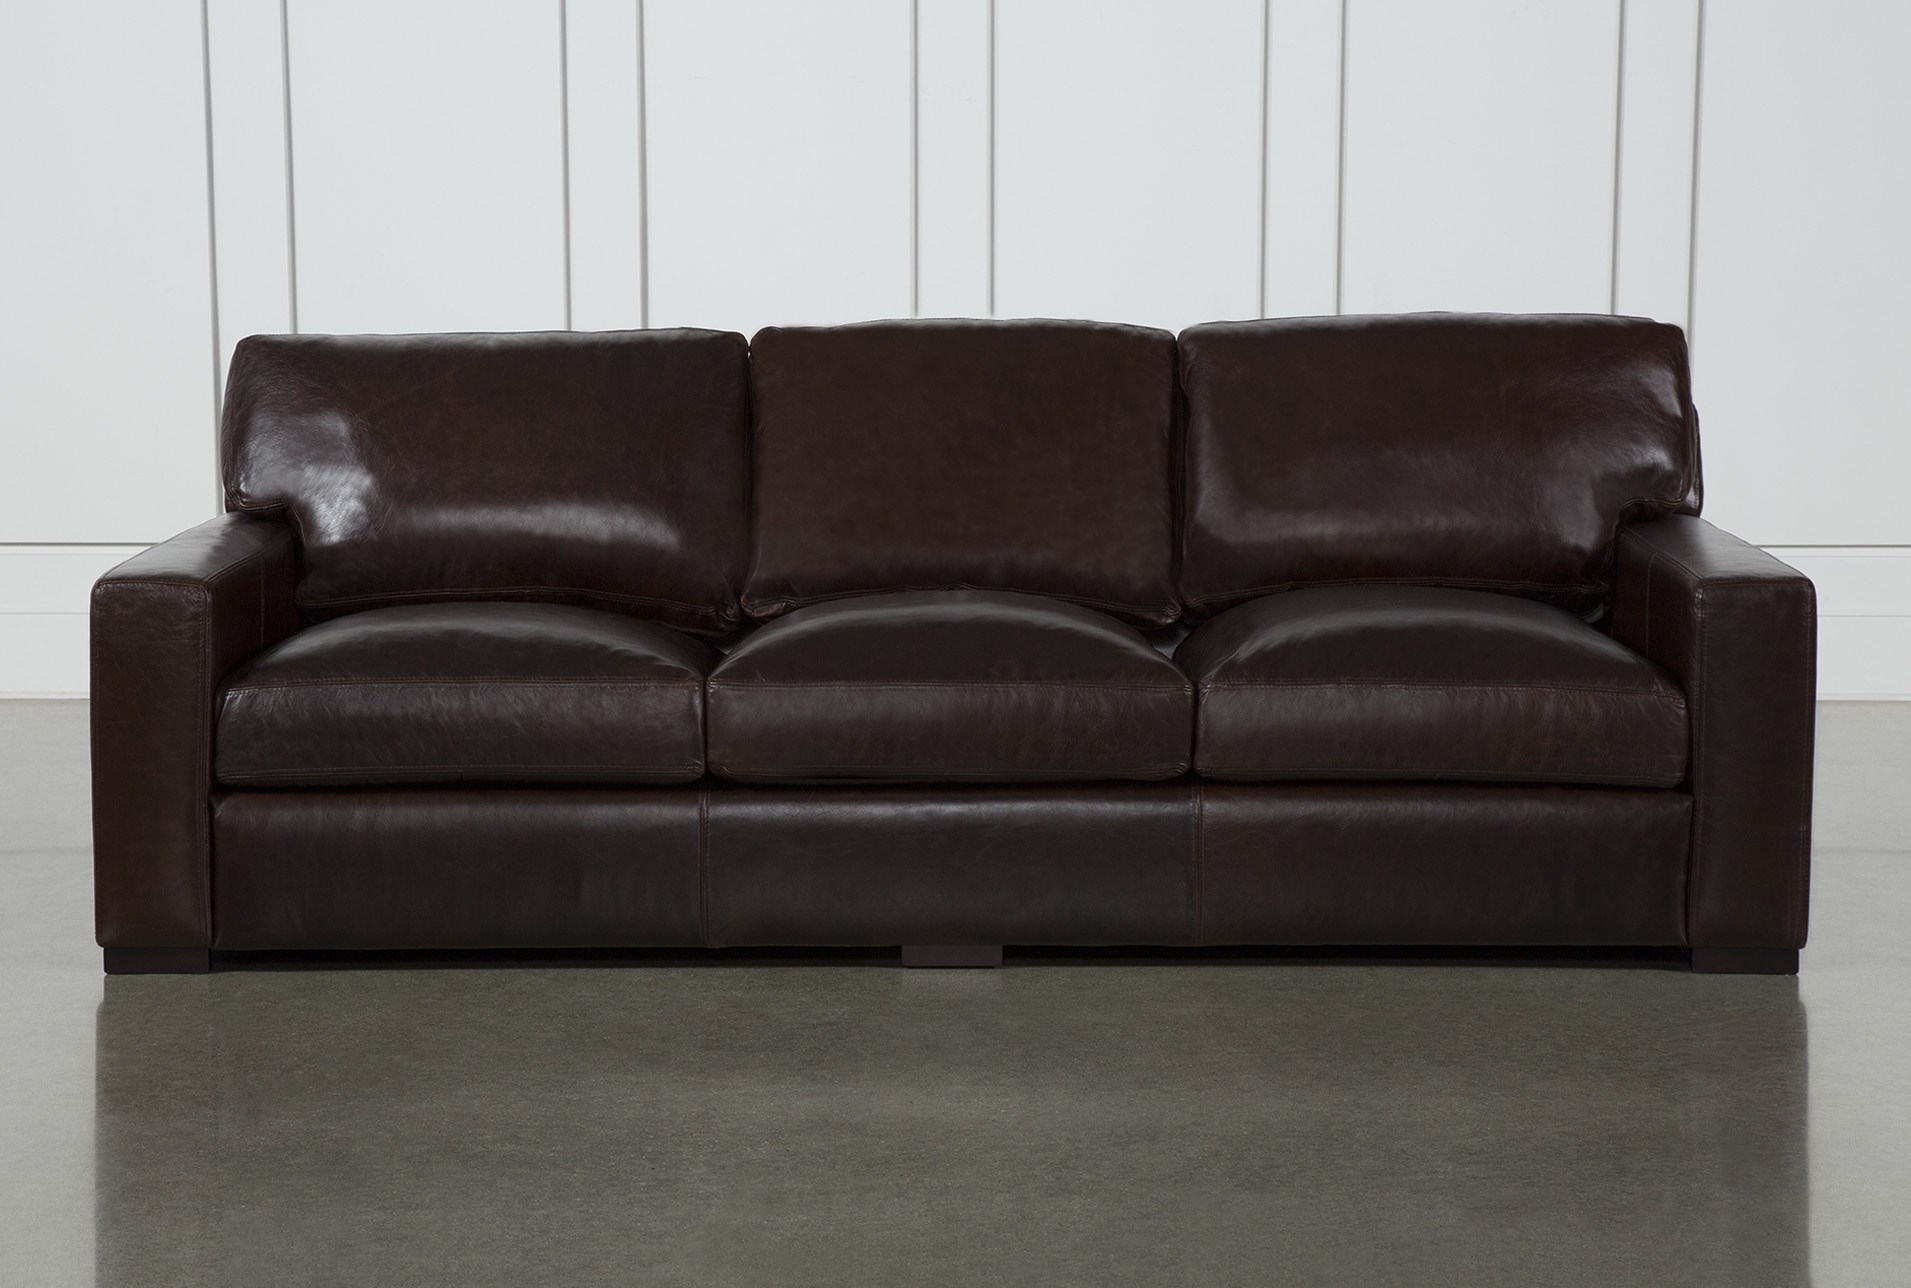 Stout Leather Sofa